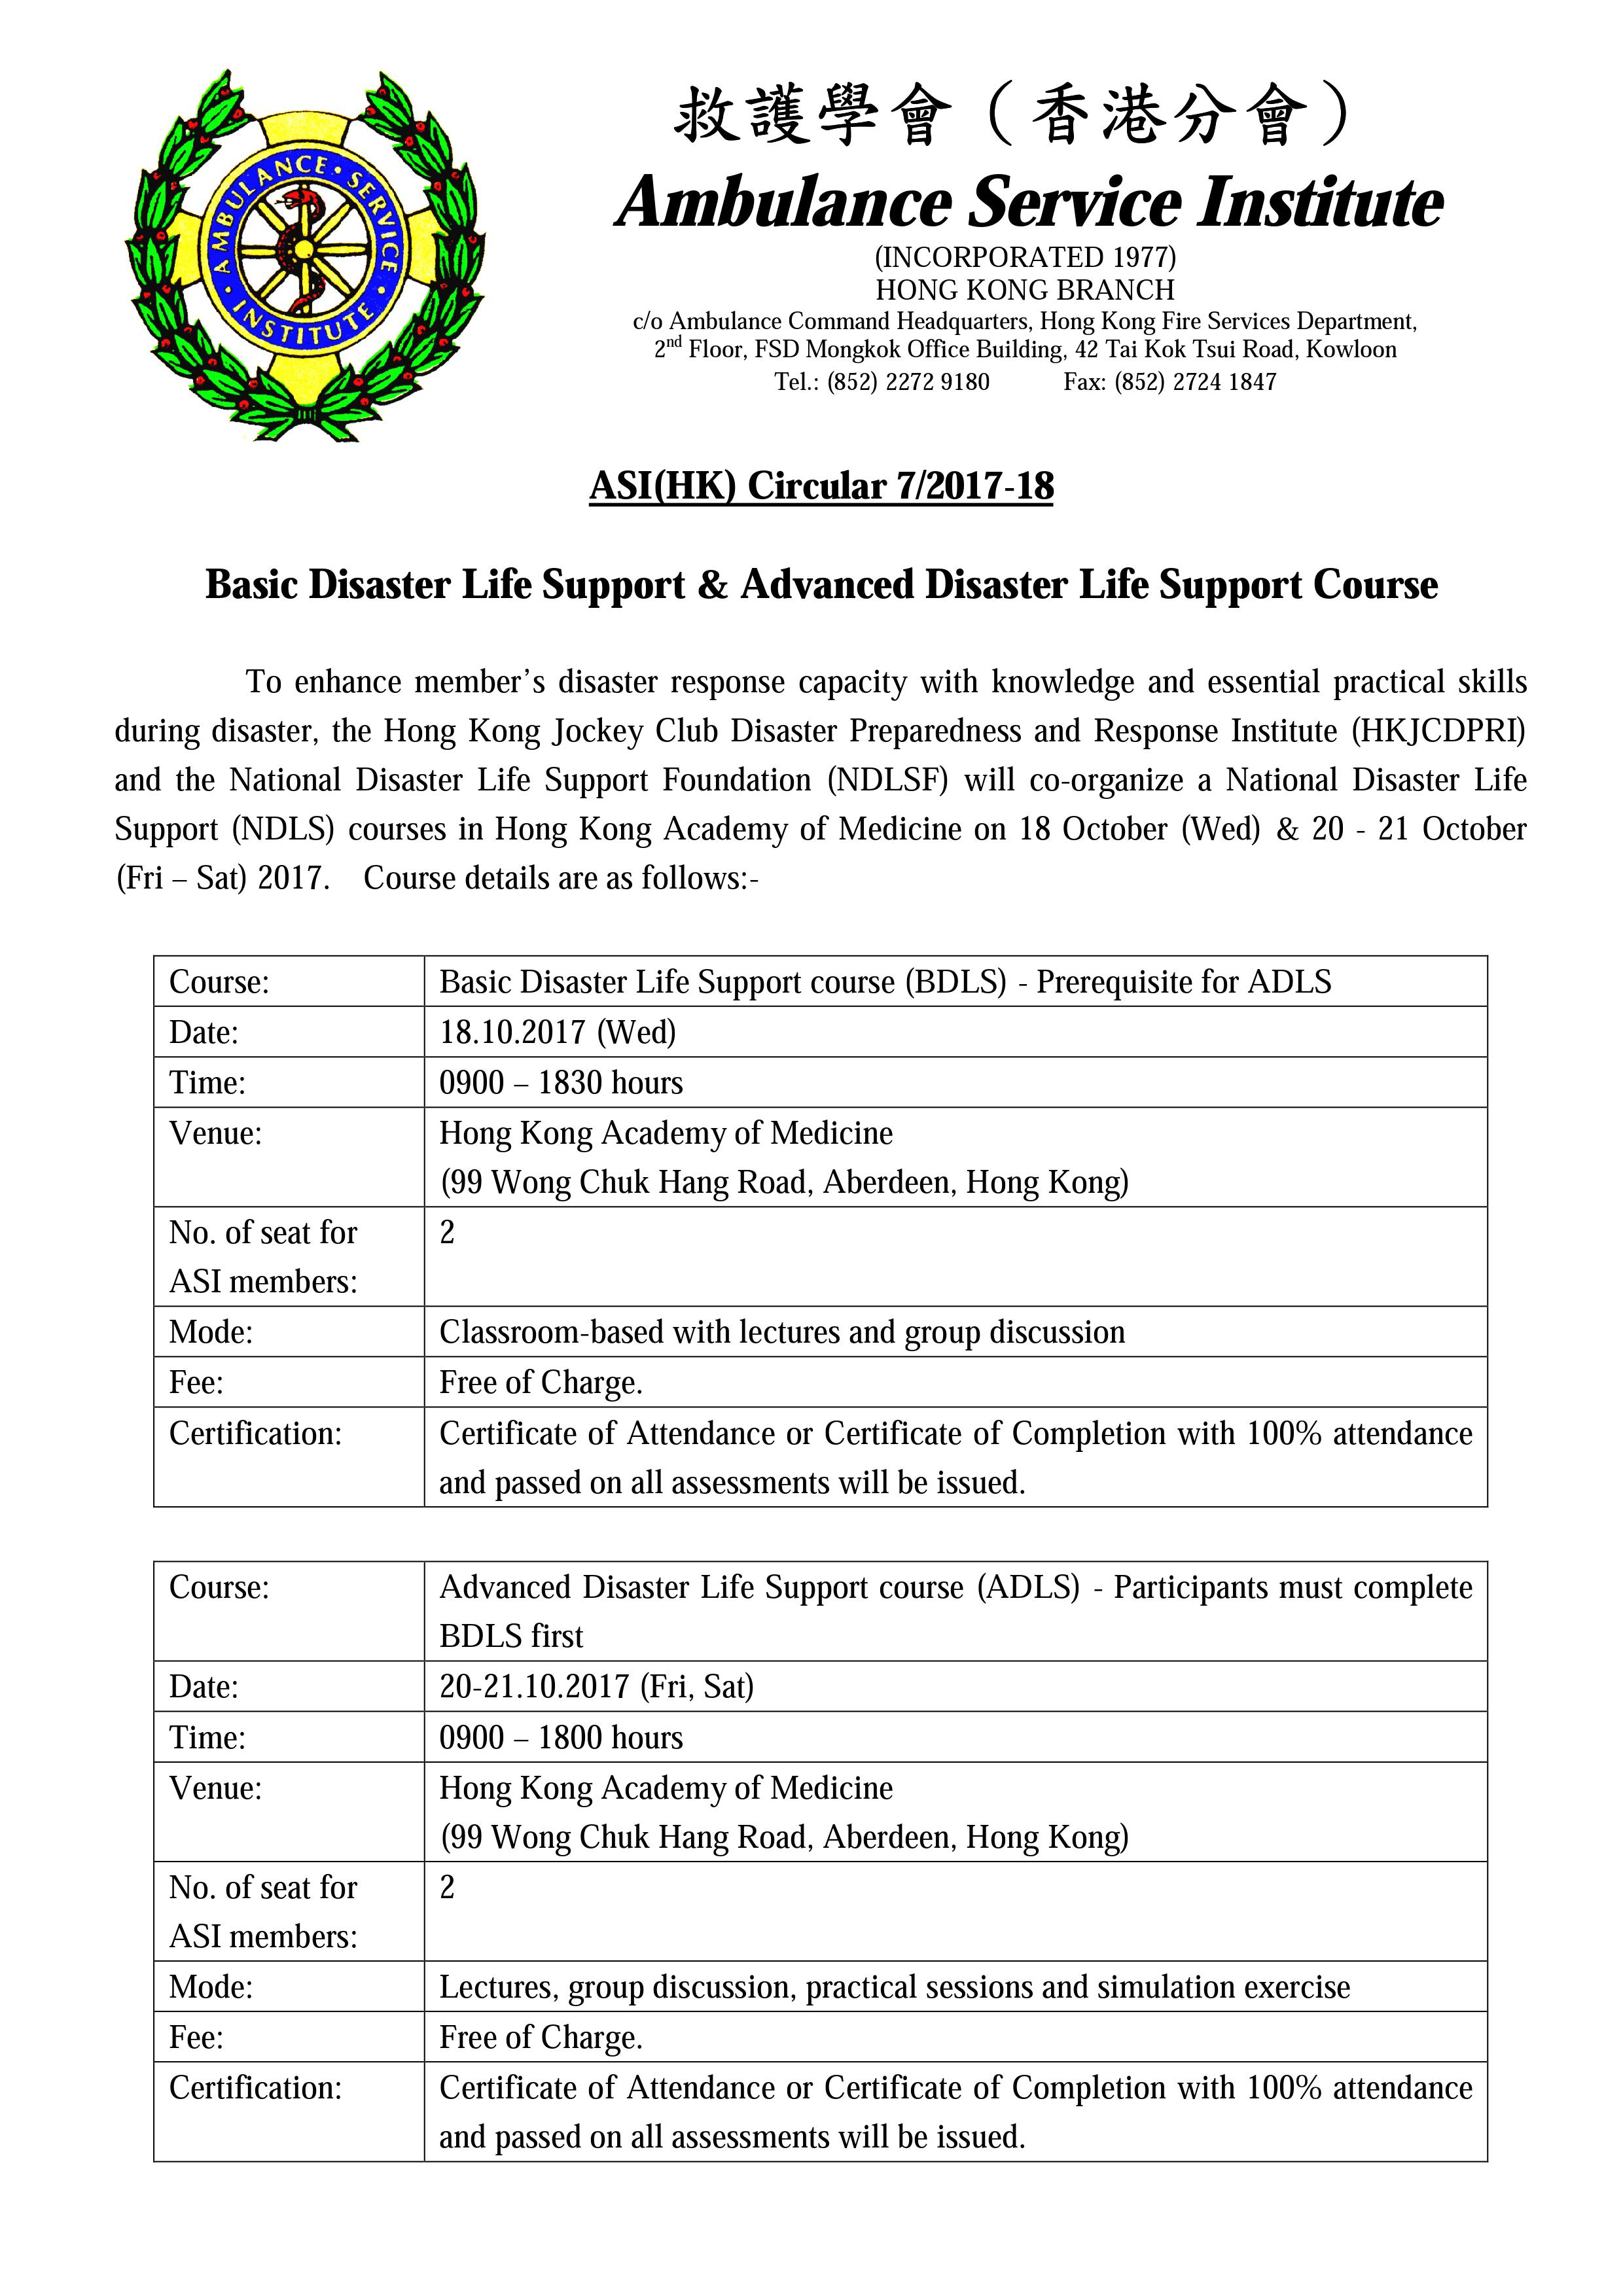 Asihk ambulance service institute hong kong branch the core disaster life support cdls course cdls the basic disaster life support bdls course the advanced disaster life support adls course xflitez Gallery